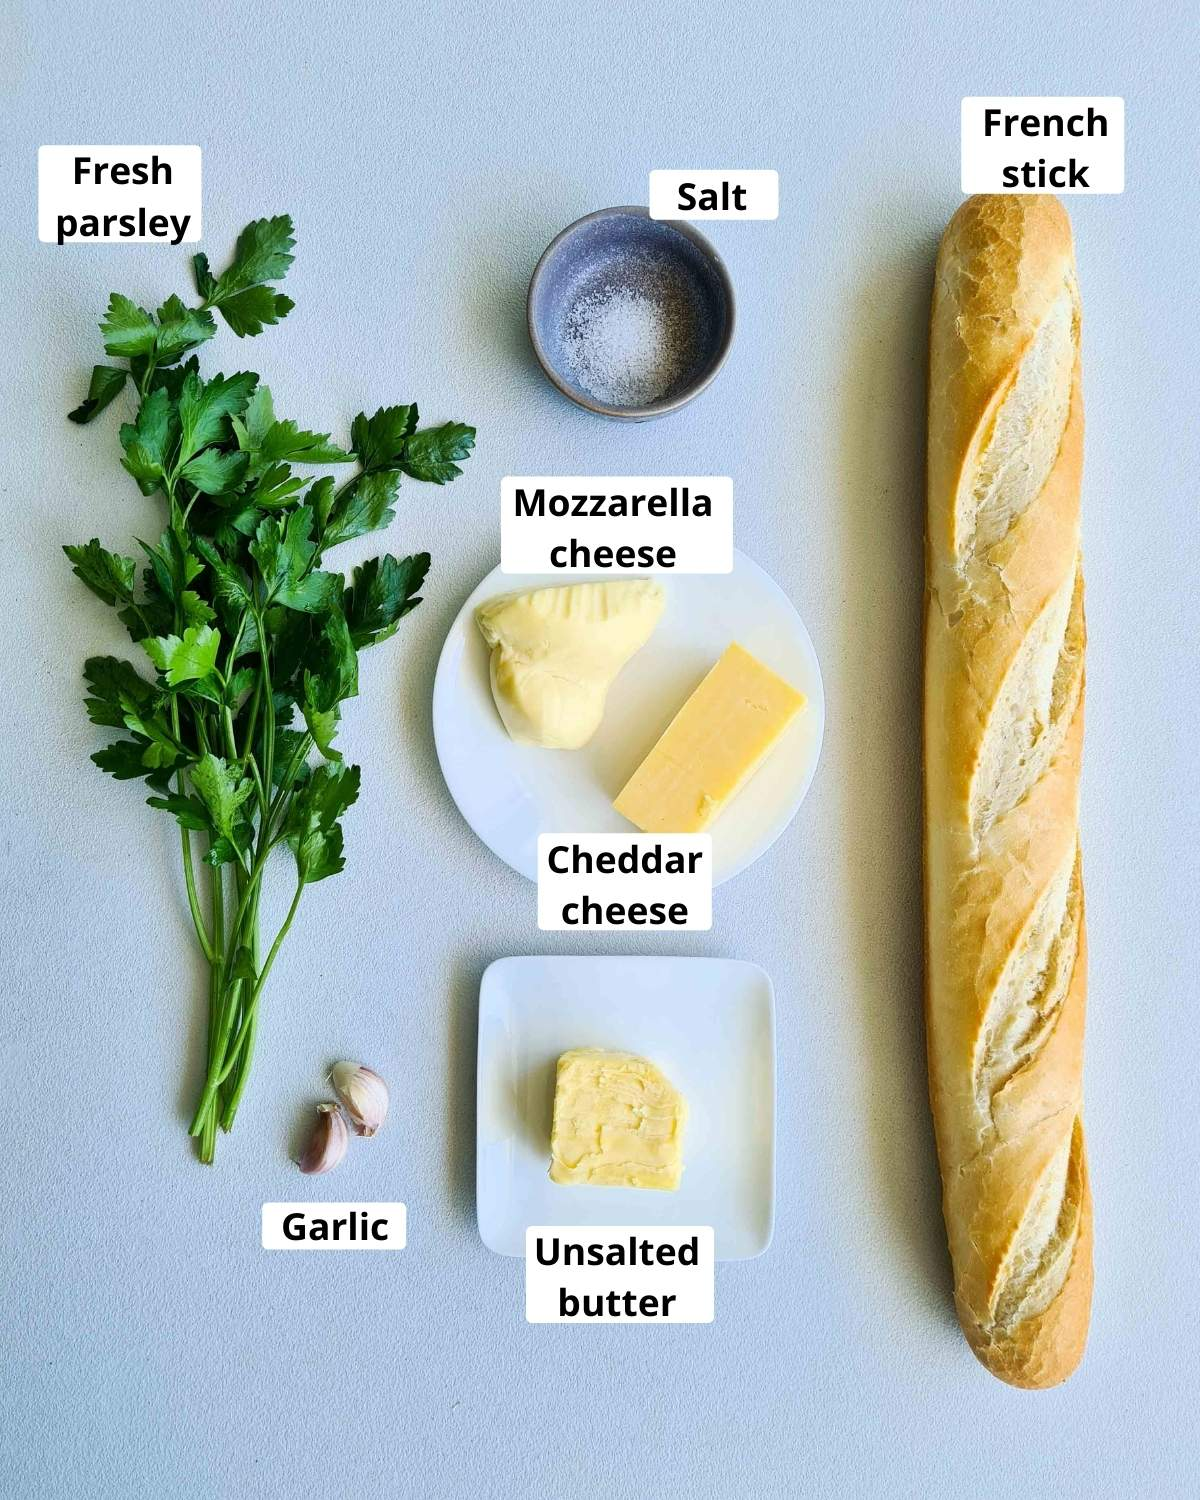 Ingredients required for this recipe